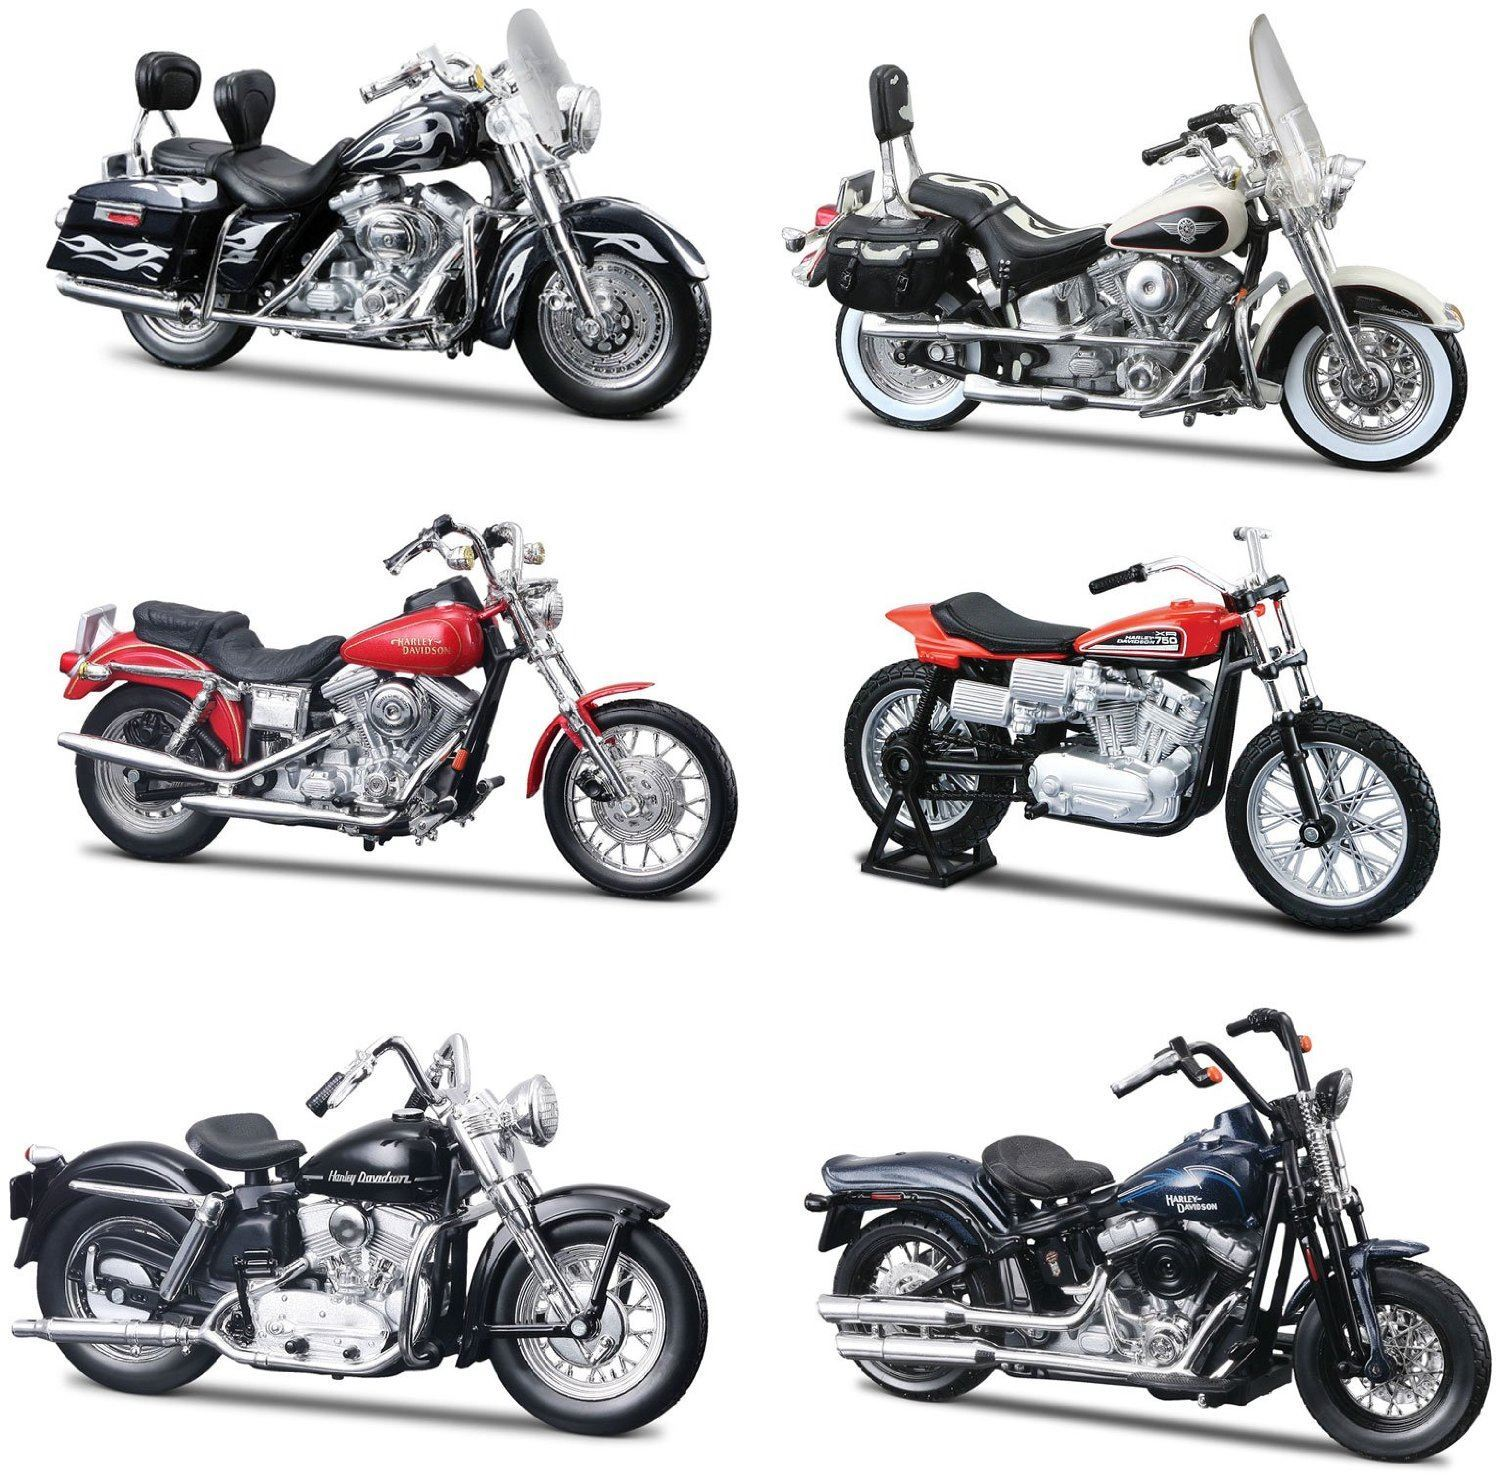 harley davidson motorcycle series 30 1 18 by maisto 31360 model motor die cast ebay. Black Bedroom Furniture Sets. Home Design Ideas